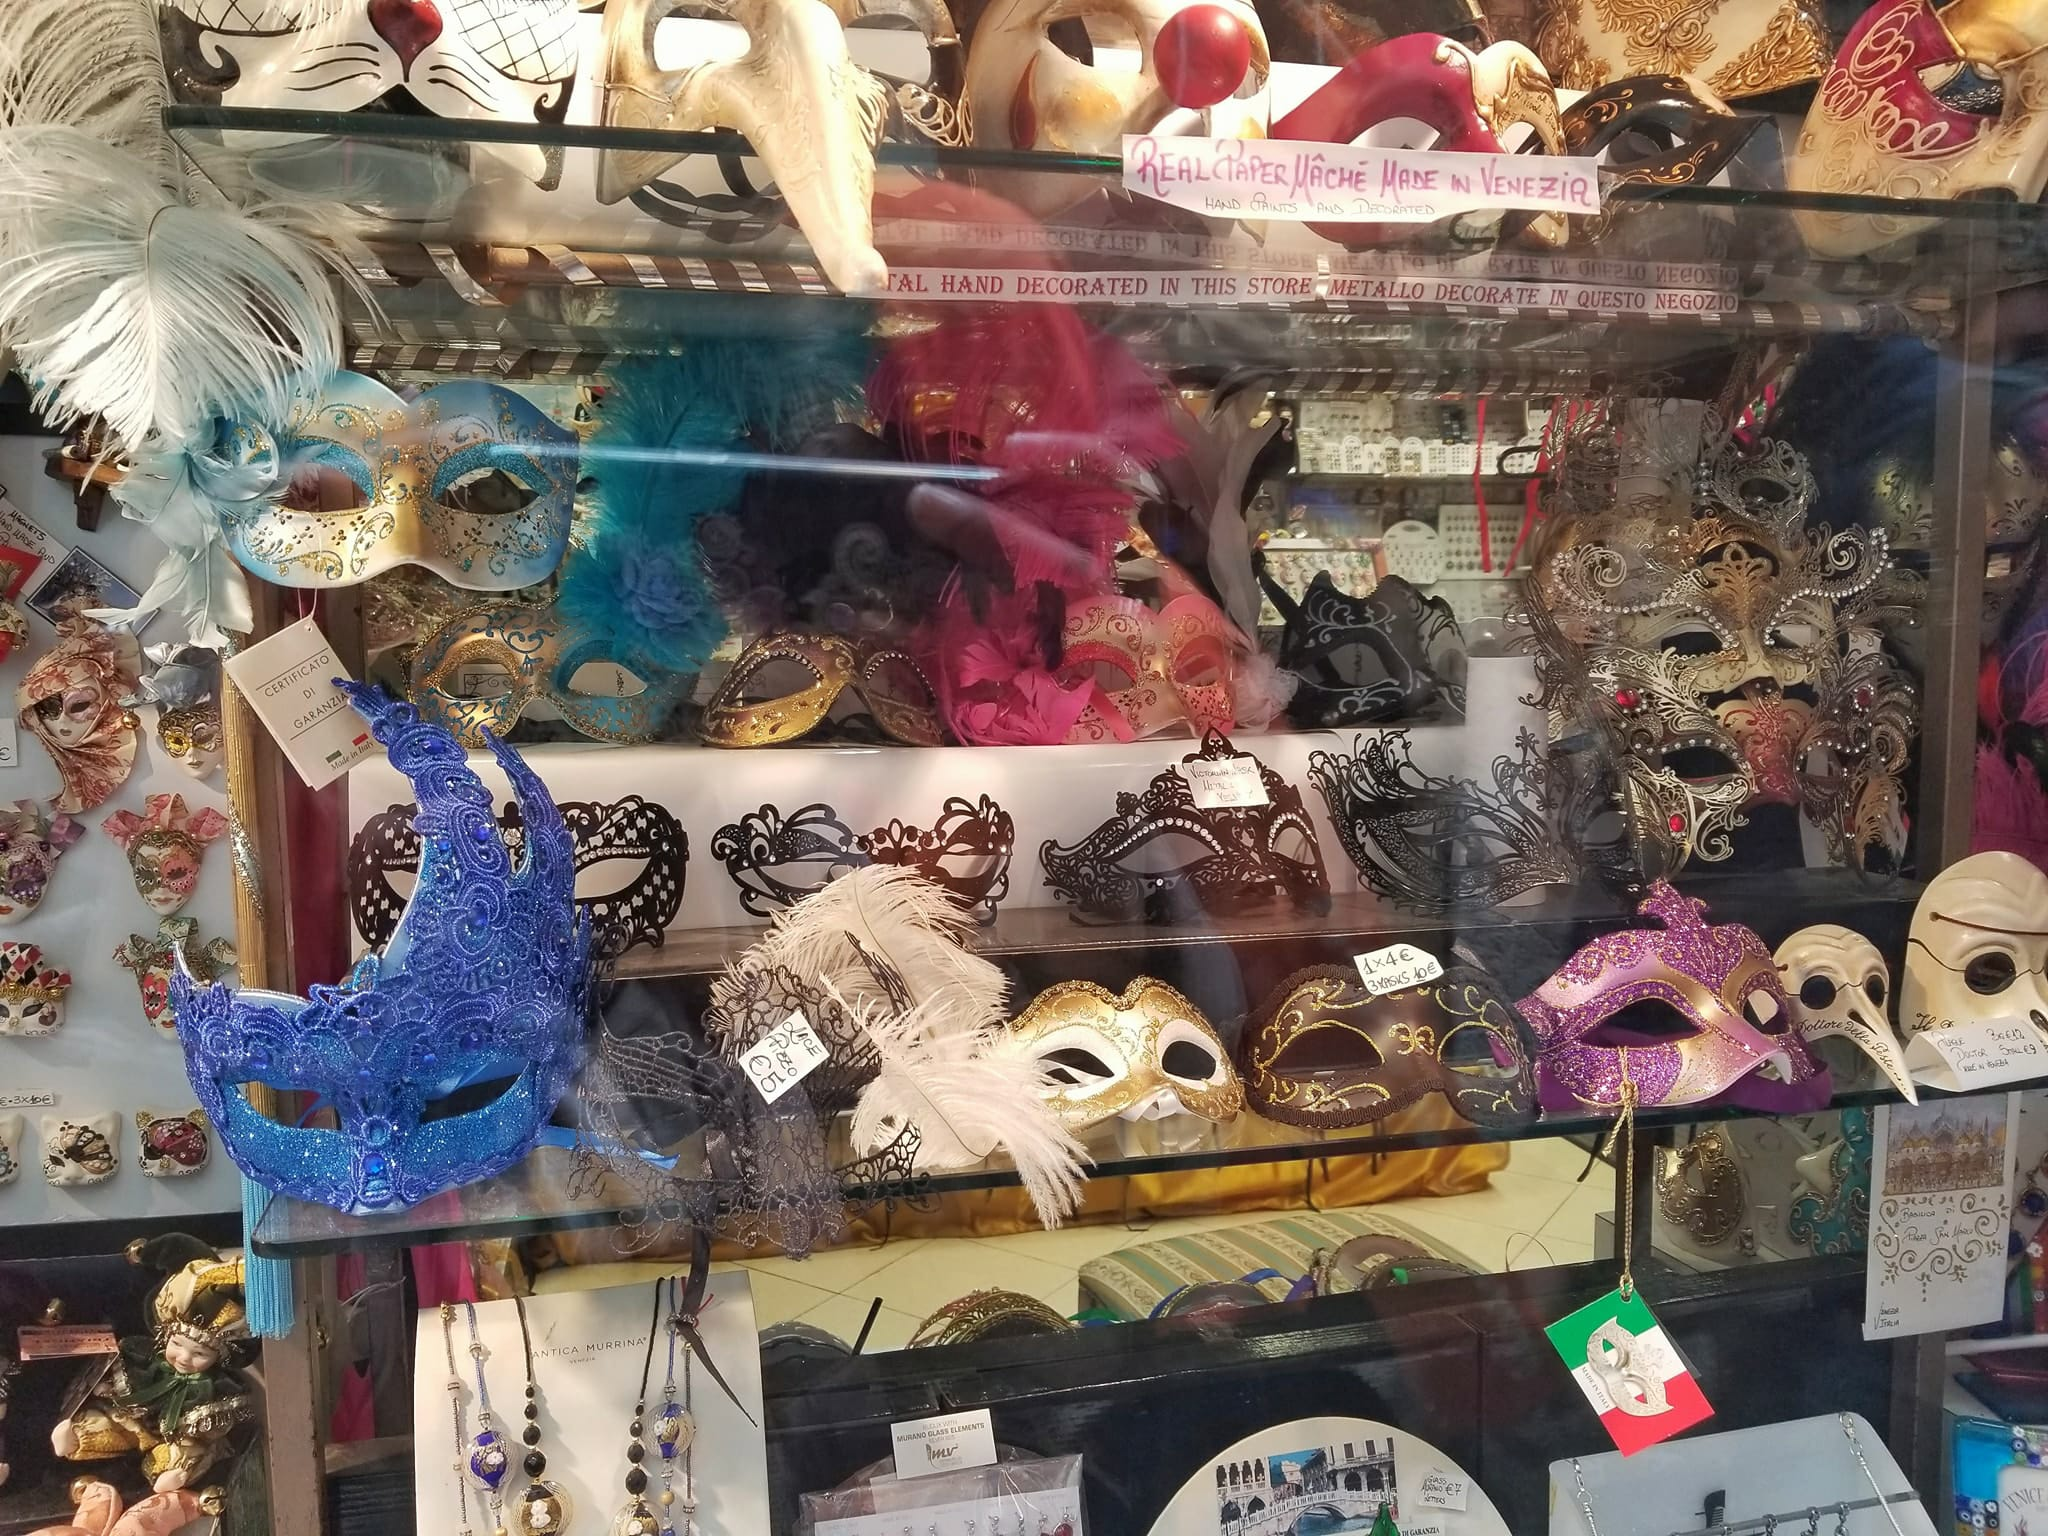 Venice Itinerary - Mask and souvenir shop